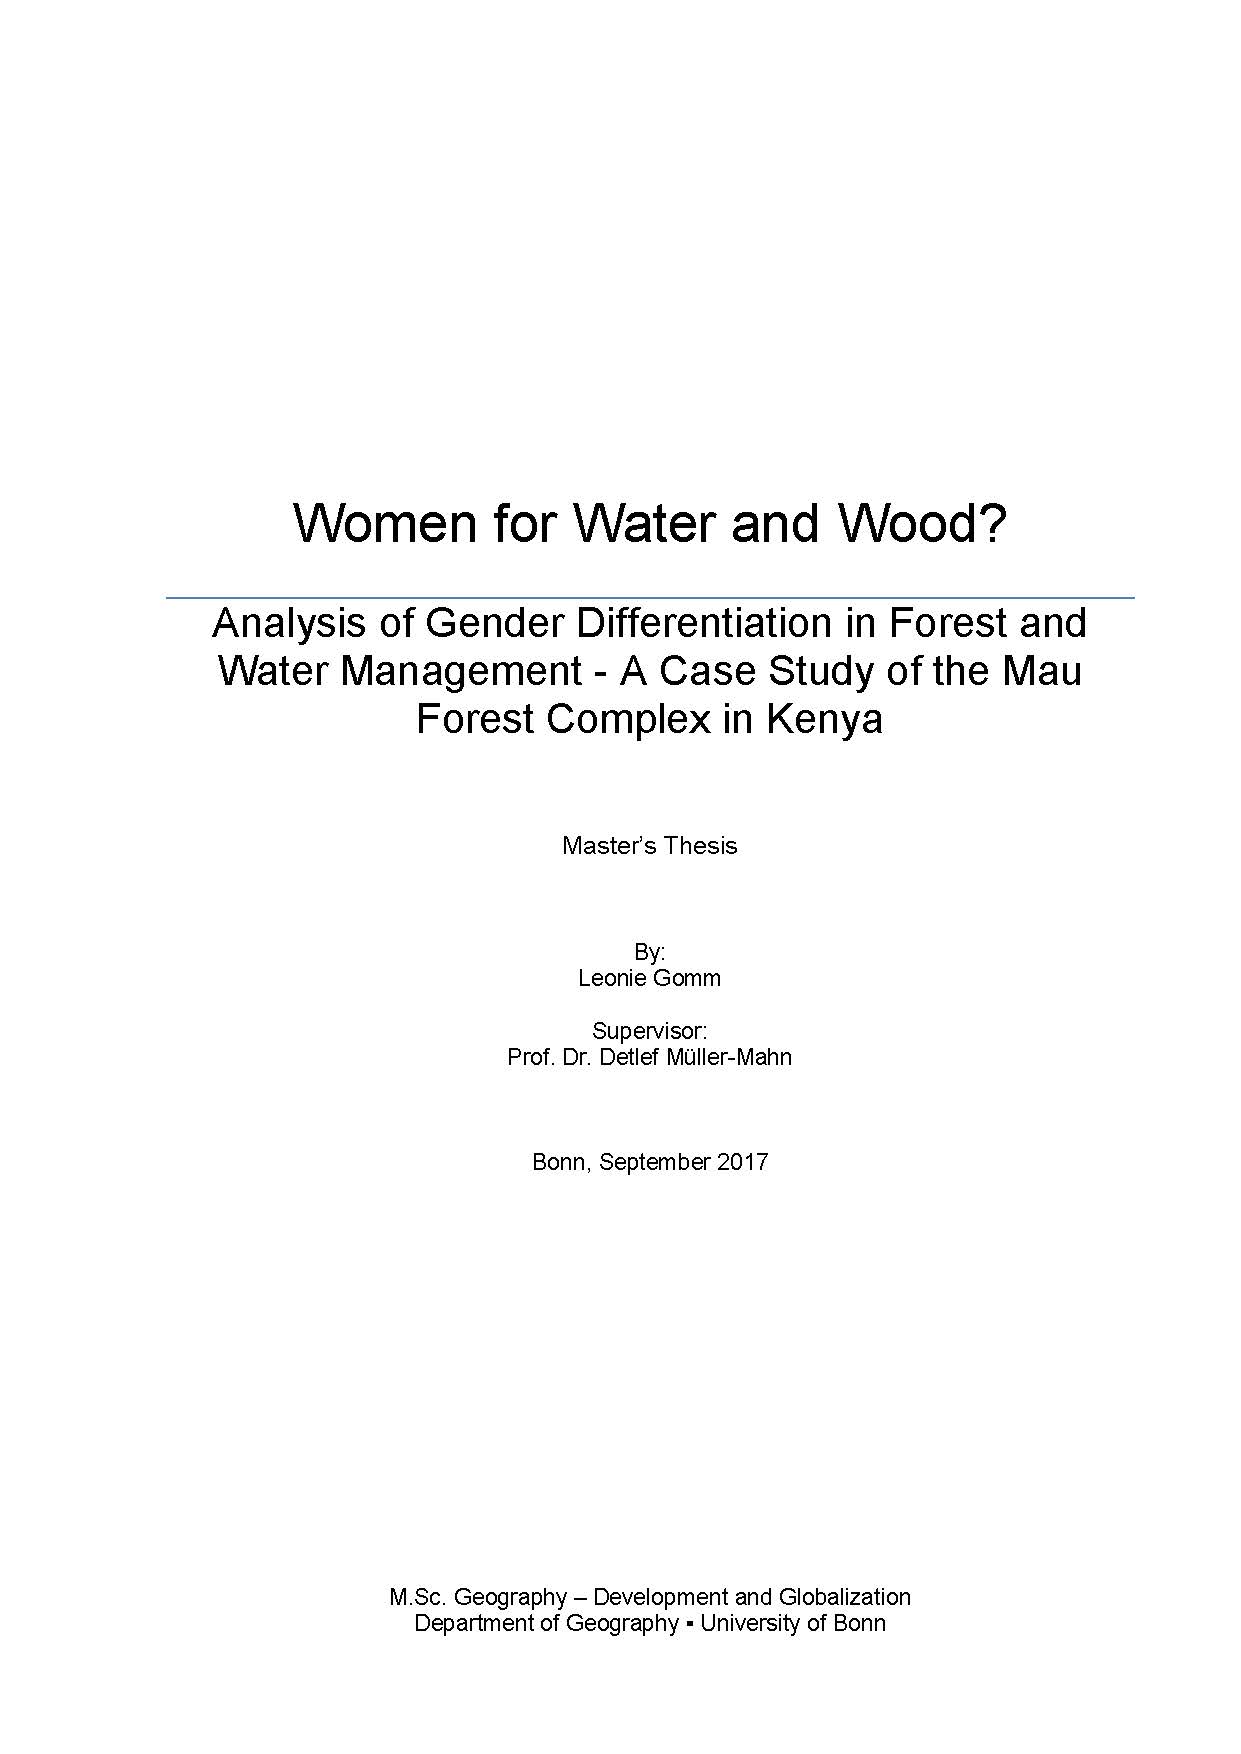 Women for Water and Wood?: Analysis of Gender Differentiation in Forest and Water Management – A Case Study of the Mau Forest Complex in Kenya